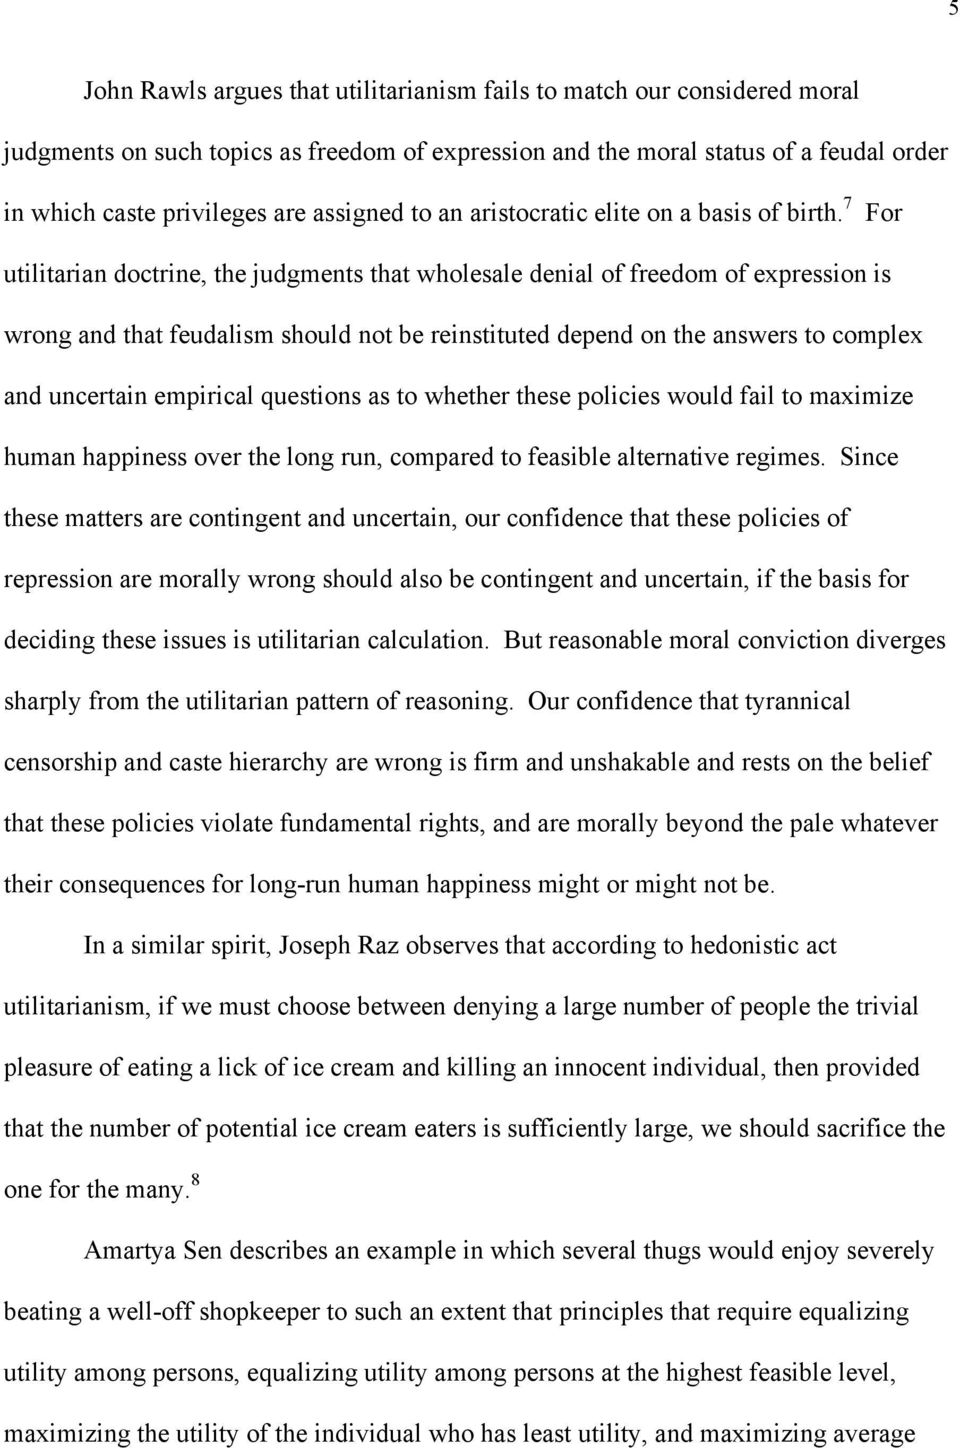 7 For utilitarian doctrine, the judgments that wholesale denial of freedom of expression is wrong and that feudalism should not be reinstituted depend on the answers to complex and uncertain